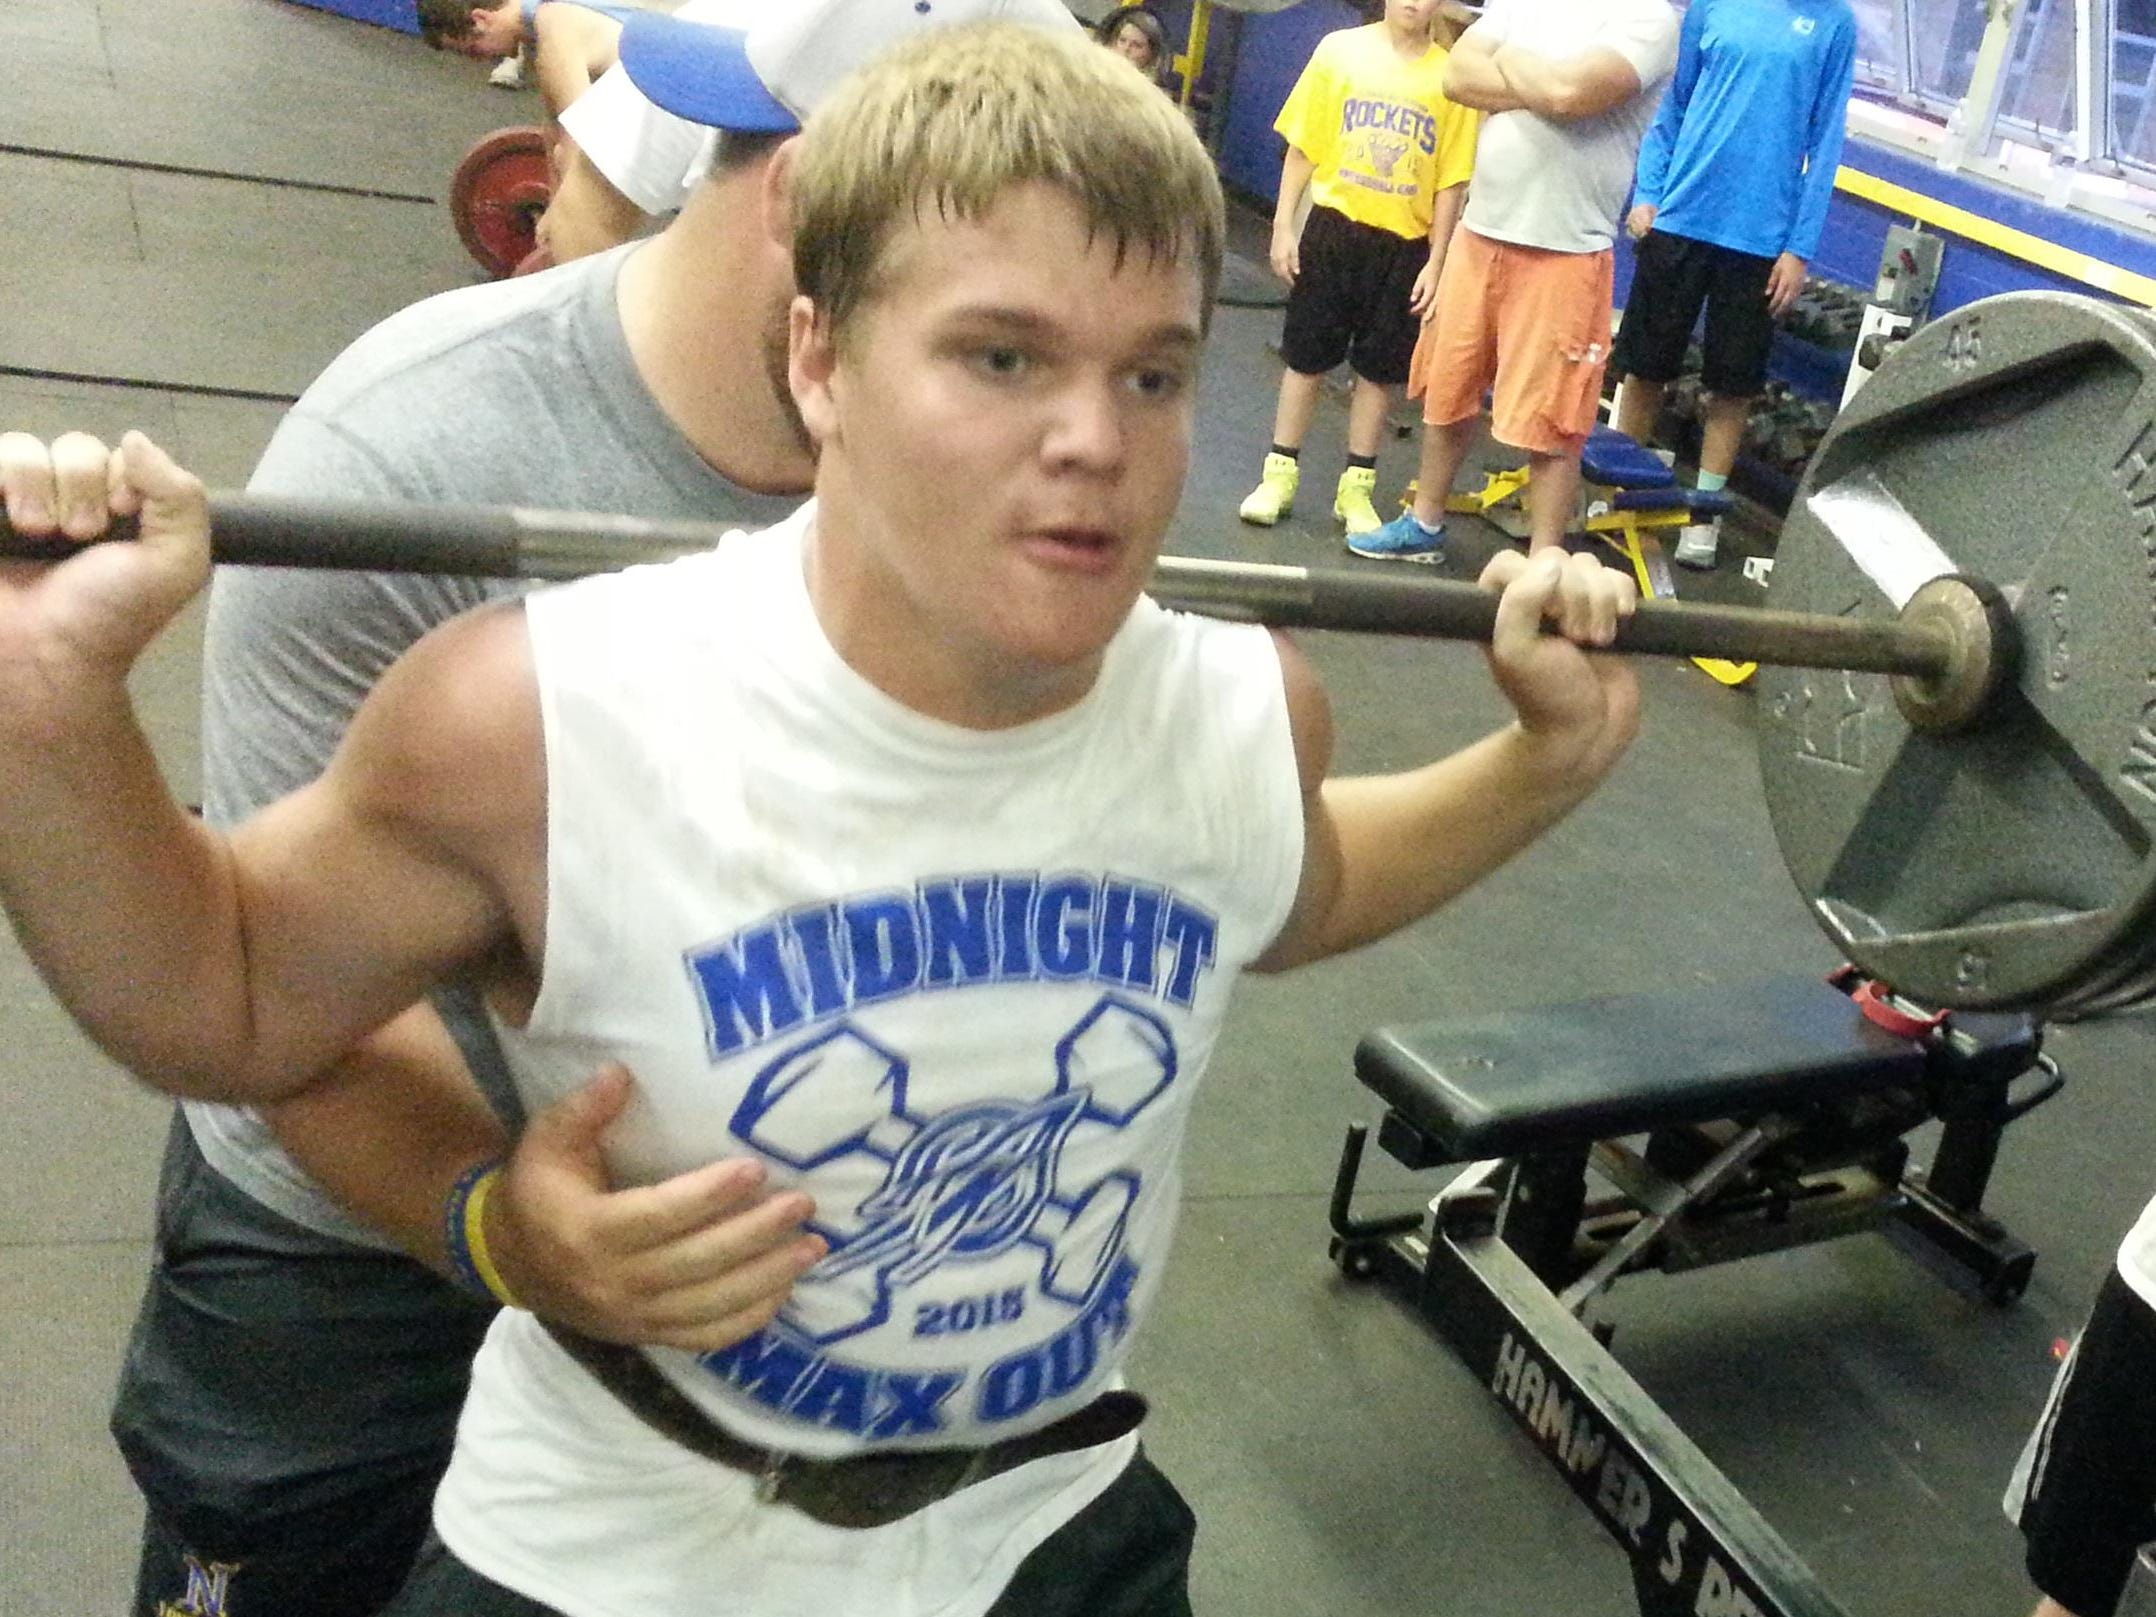 CNE football junior captain Luke Newton lifts during the team's Midnight Maxout.